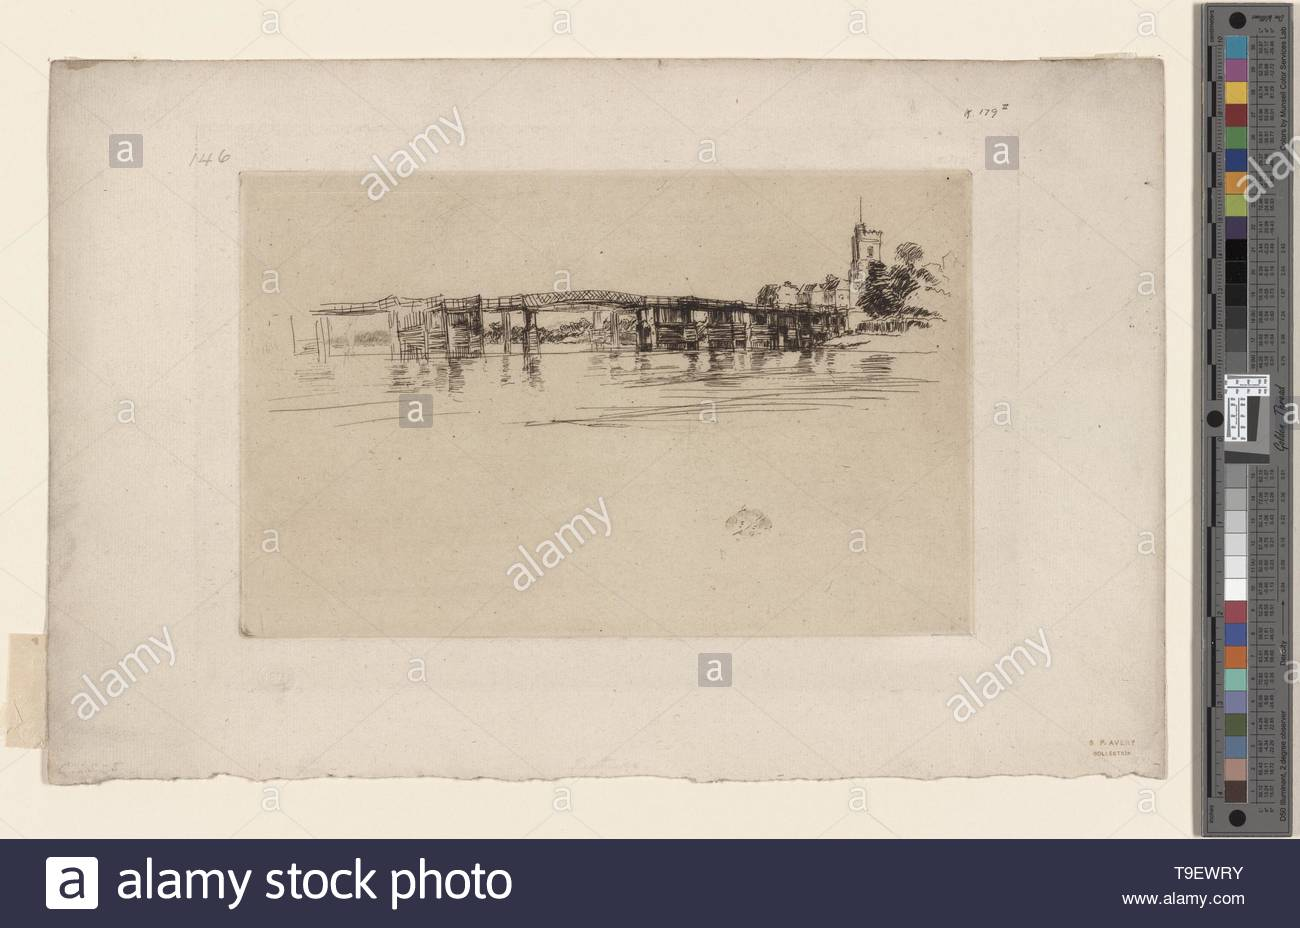 Whistler,JamesMcNeill(1834-1903)-The Little Putney, no  1 - Stock Image